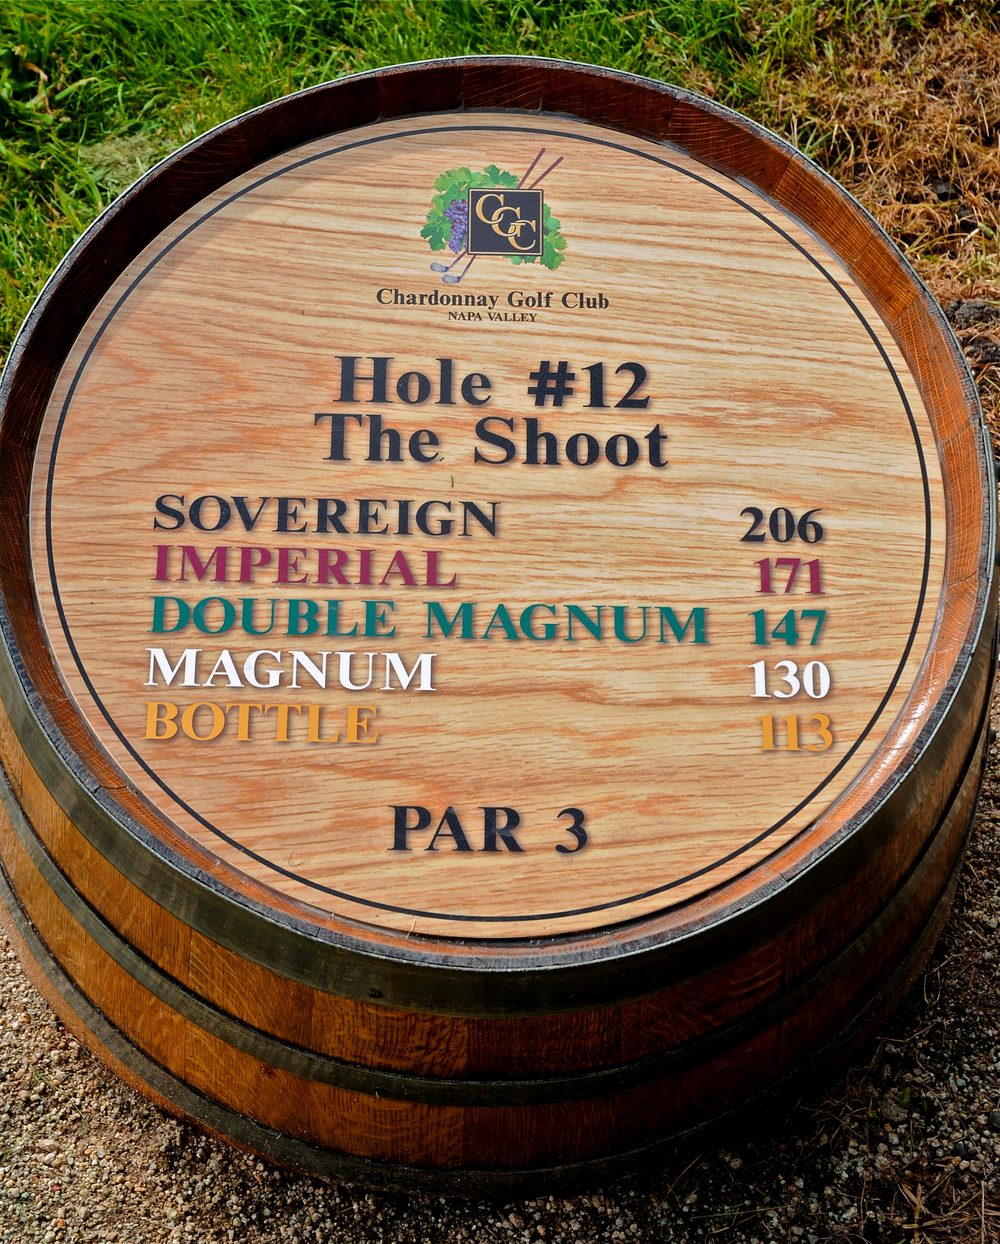 Empty wine barrels are used to indicate yardage © Robert Kaufman